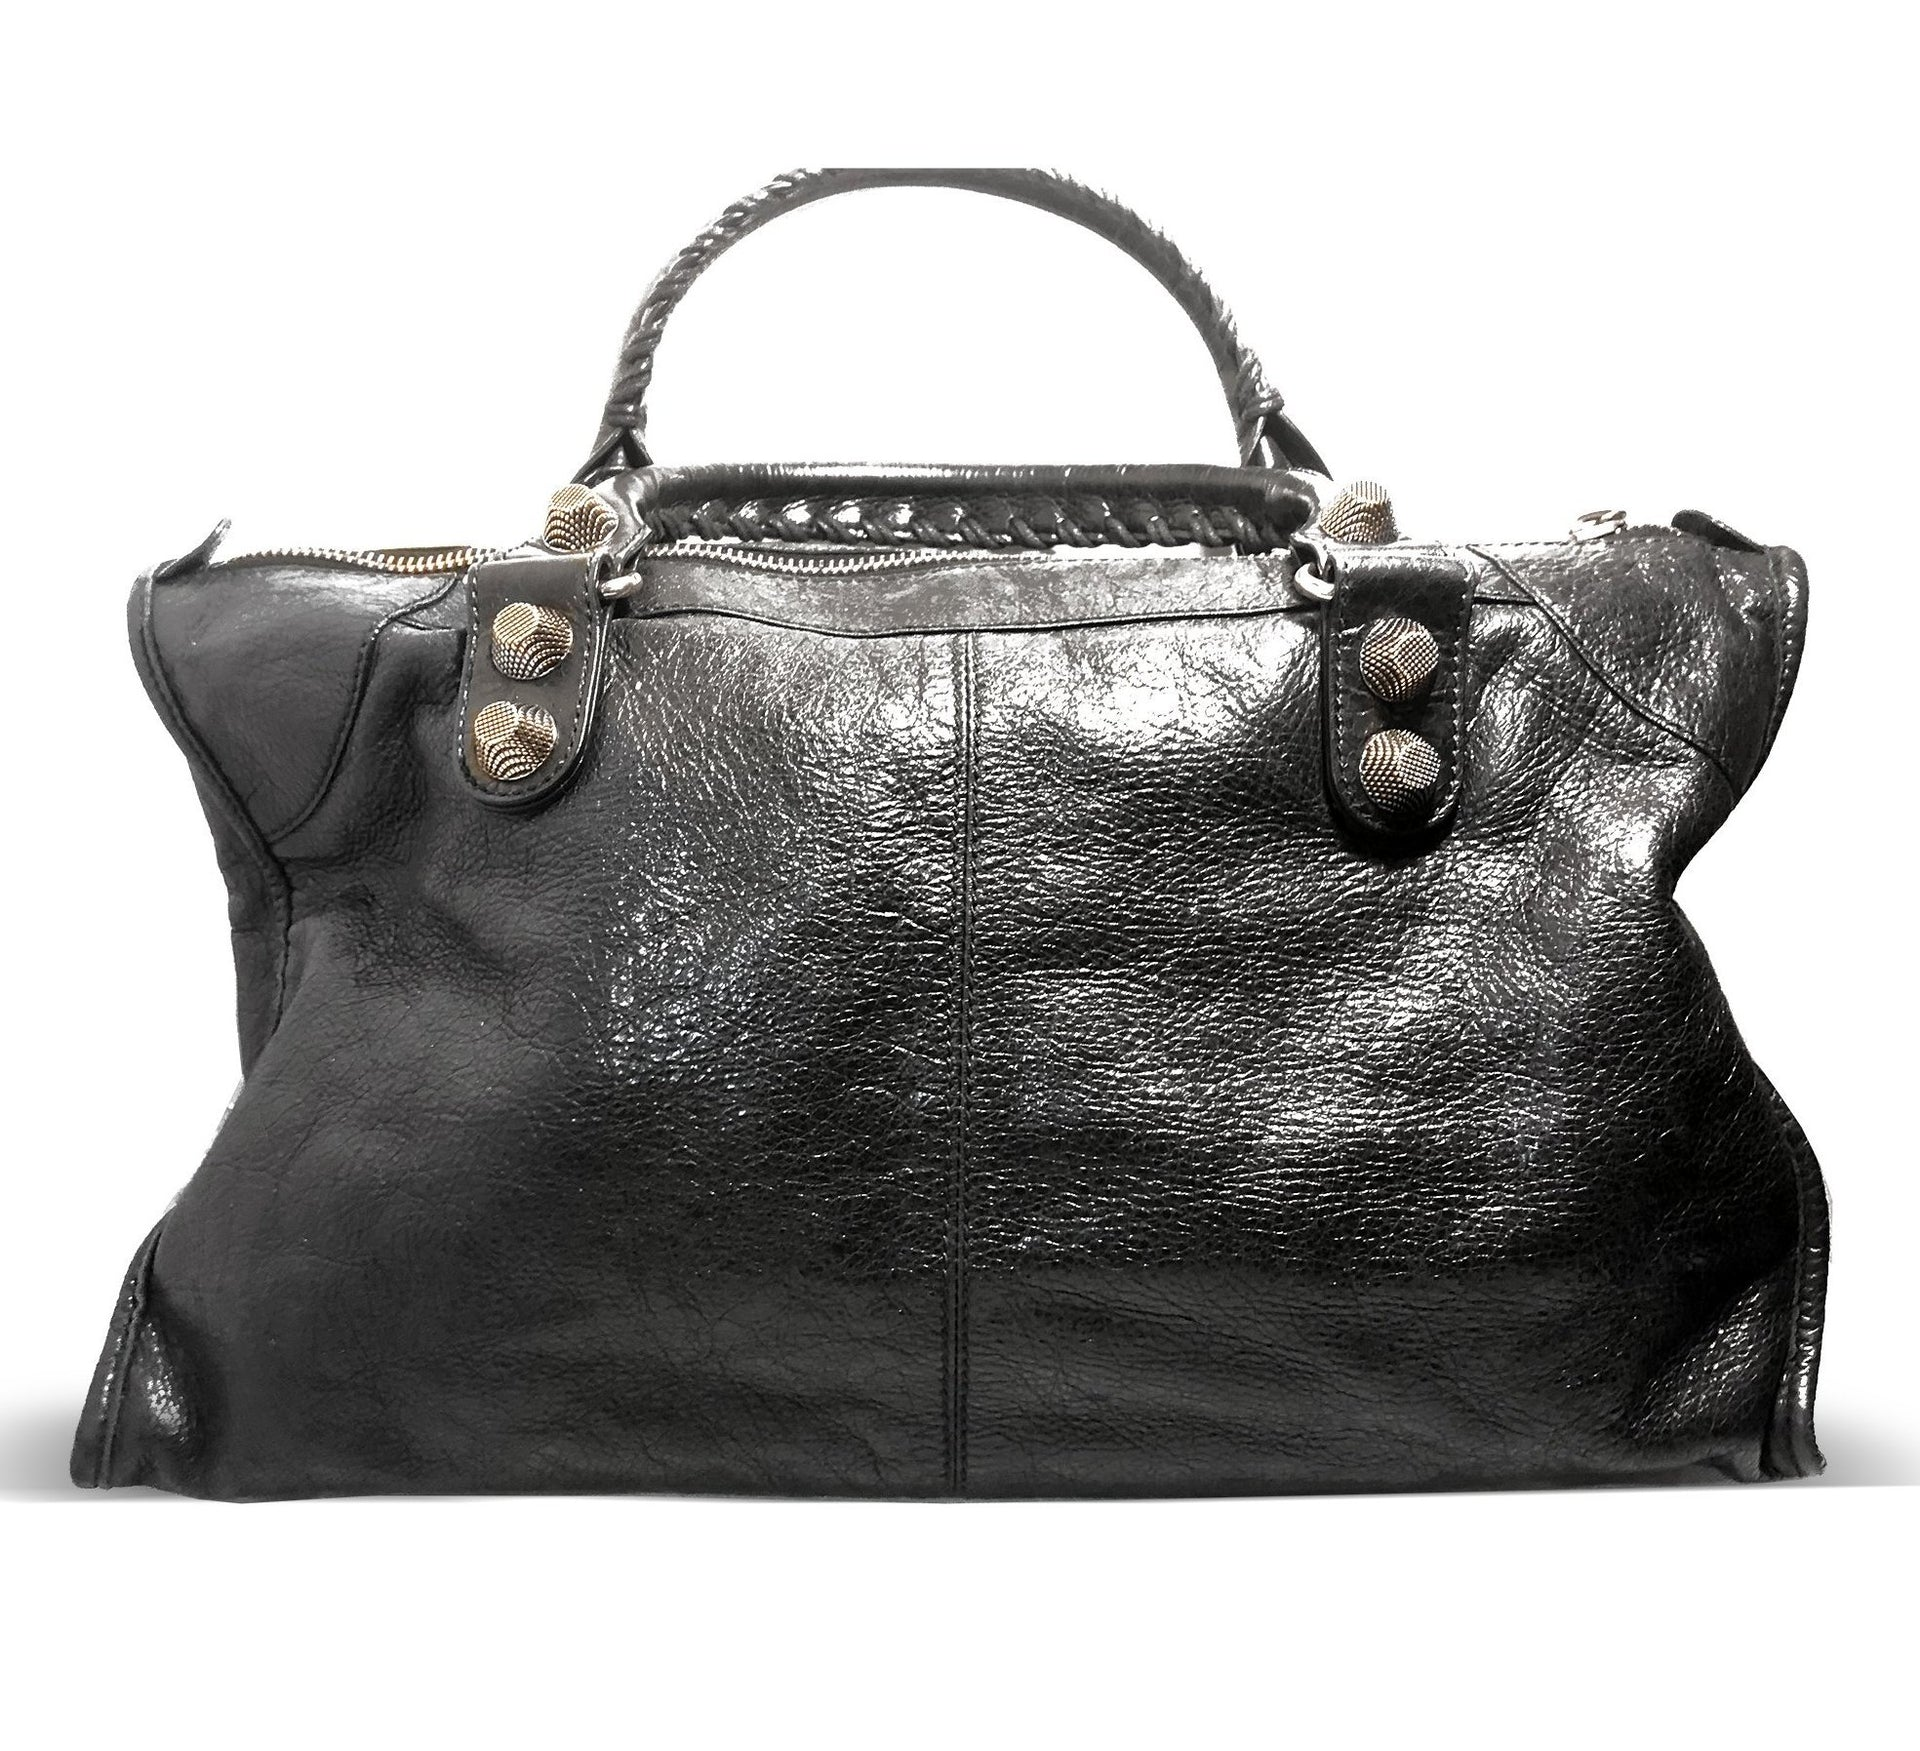 Balenciaga Gaint 21 Work Leather Tote with Classic Studs